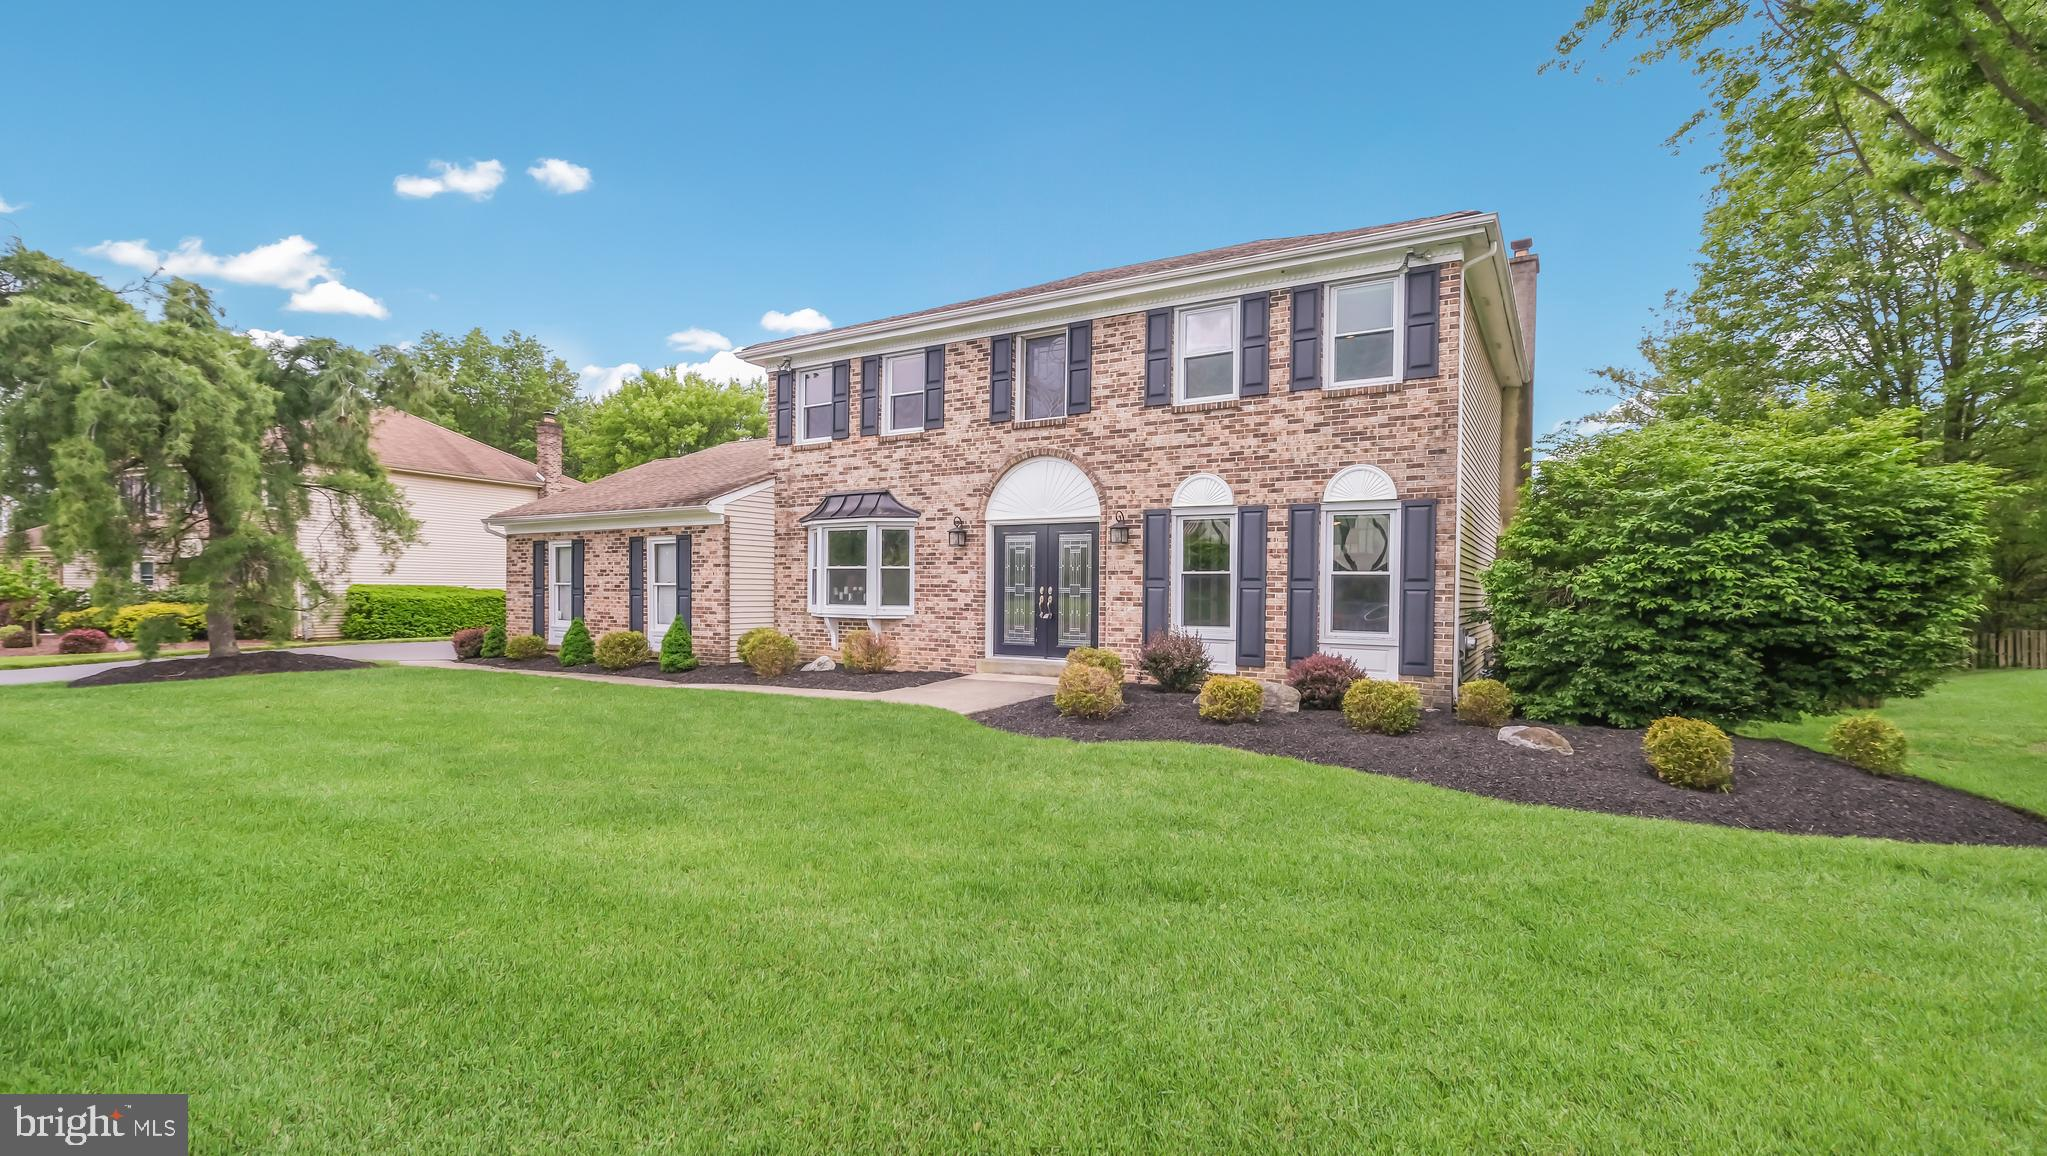 28 Meer Drive, Feasterville Trevose, PA 19053